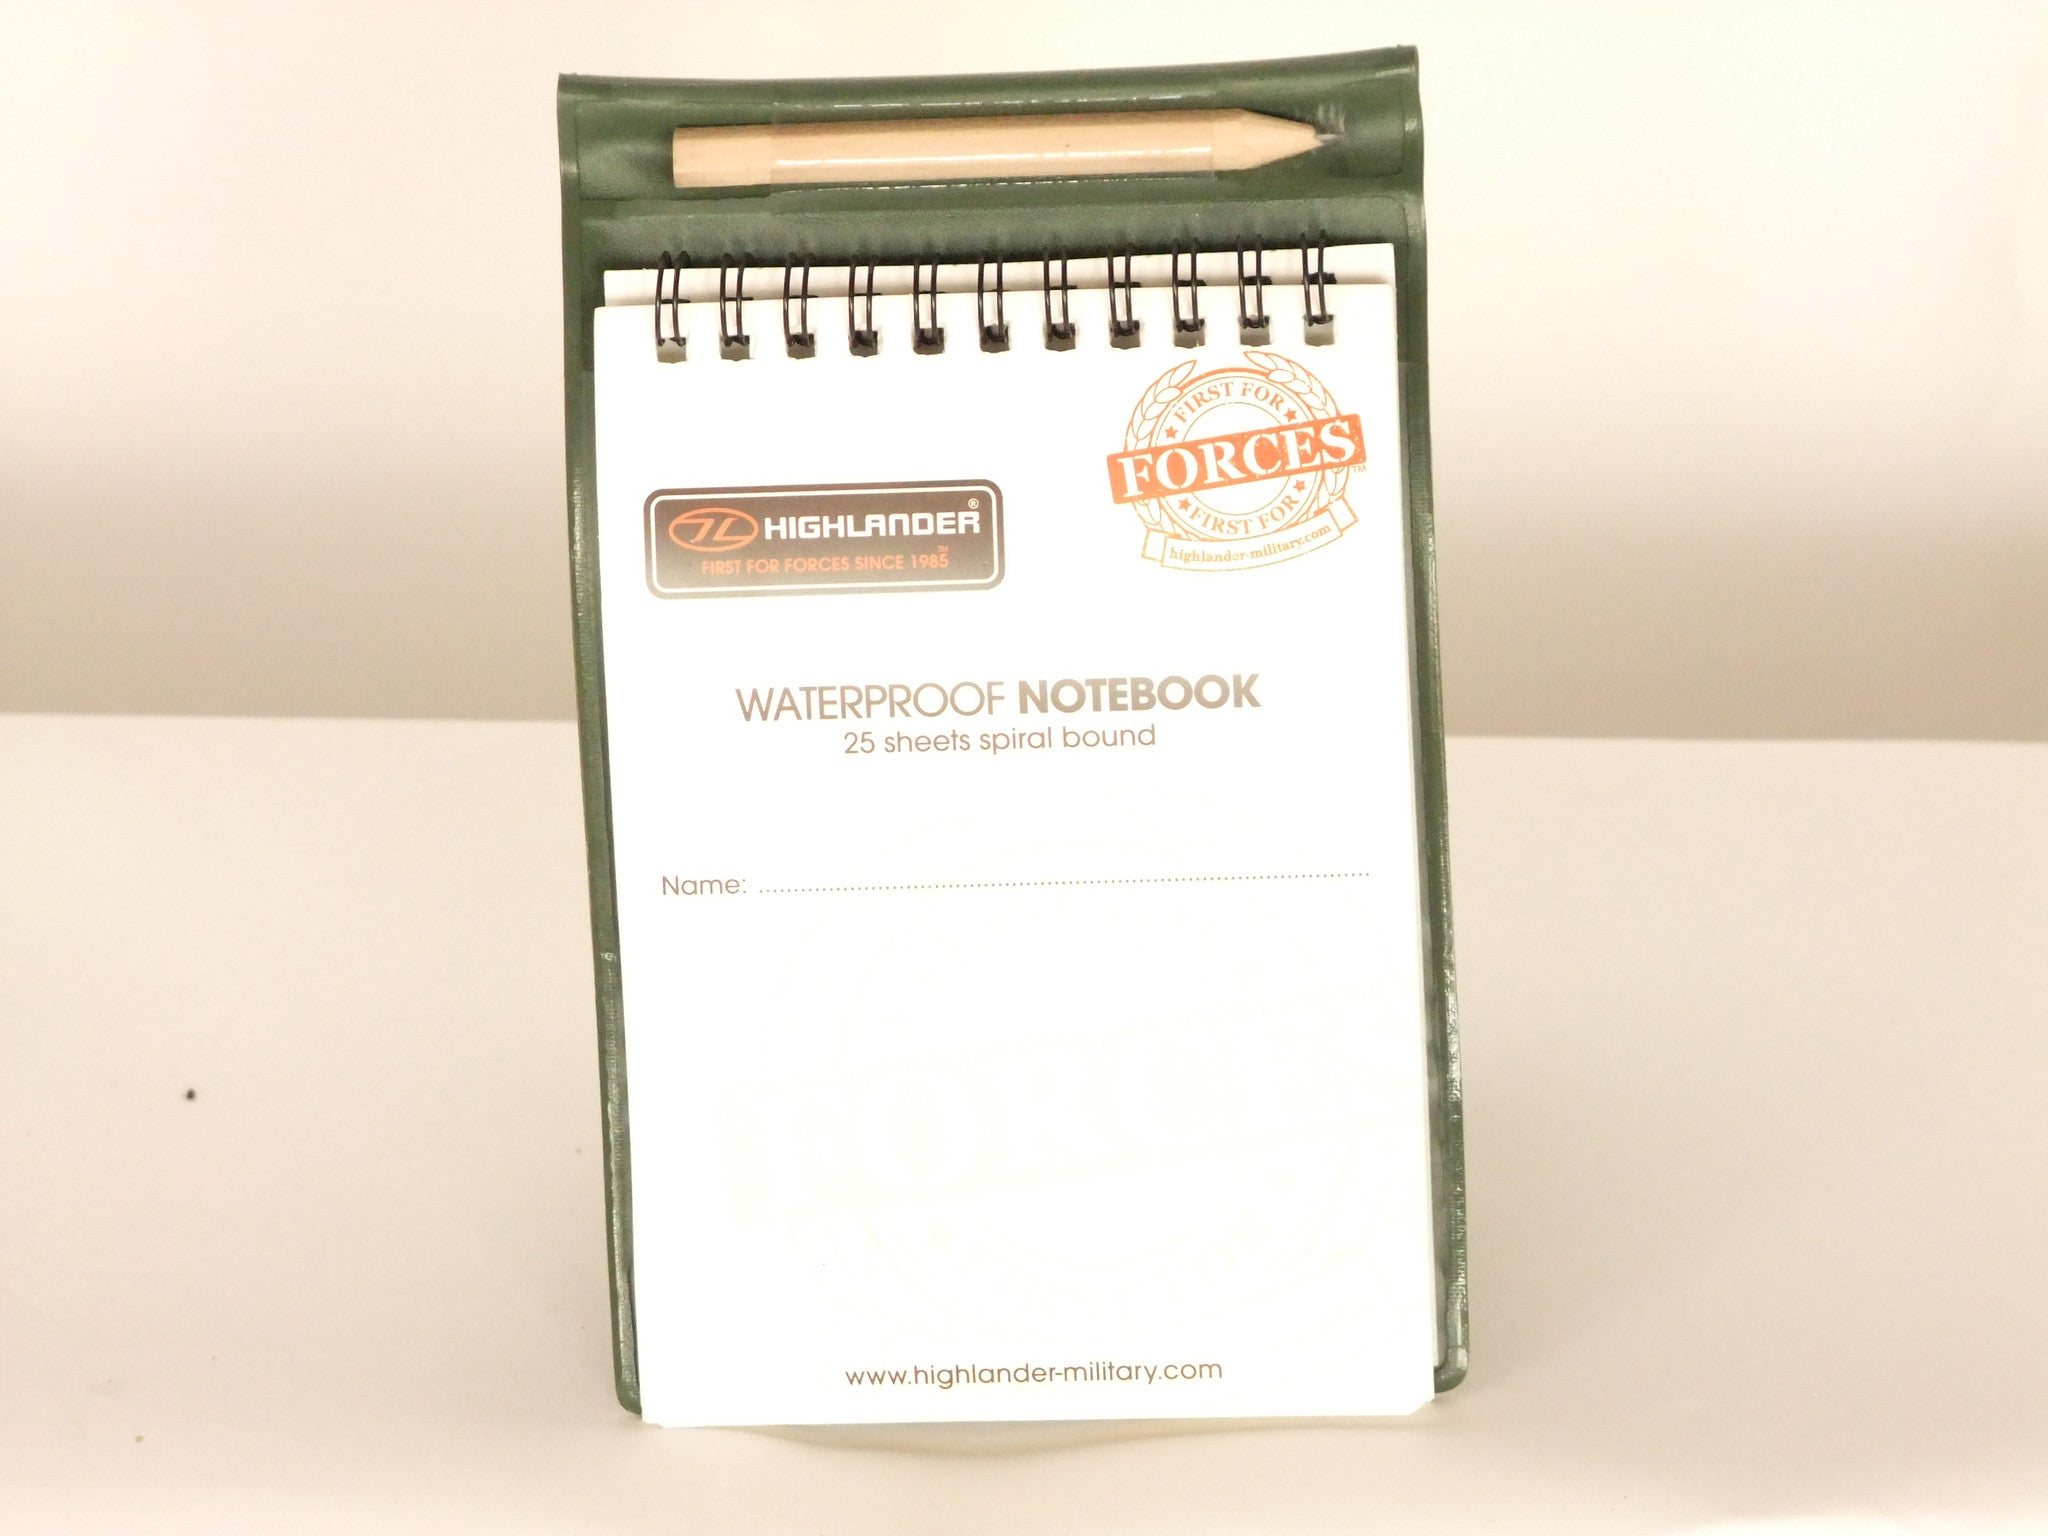 Waterproof notebook.